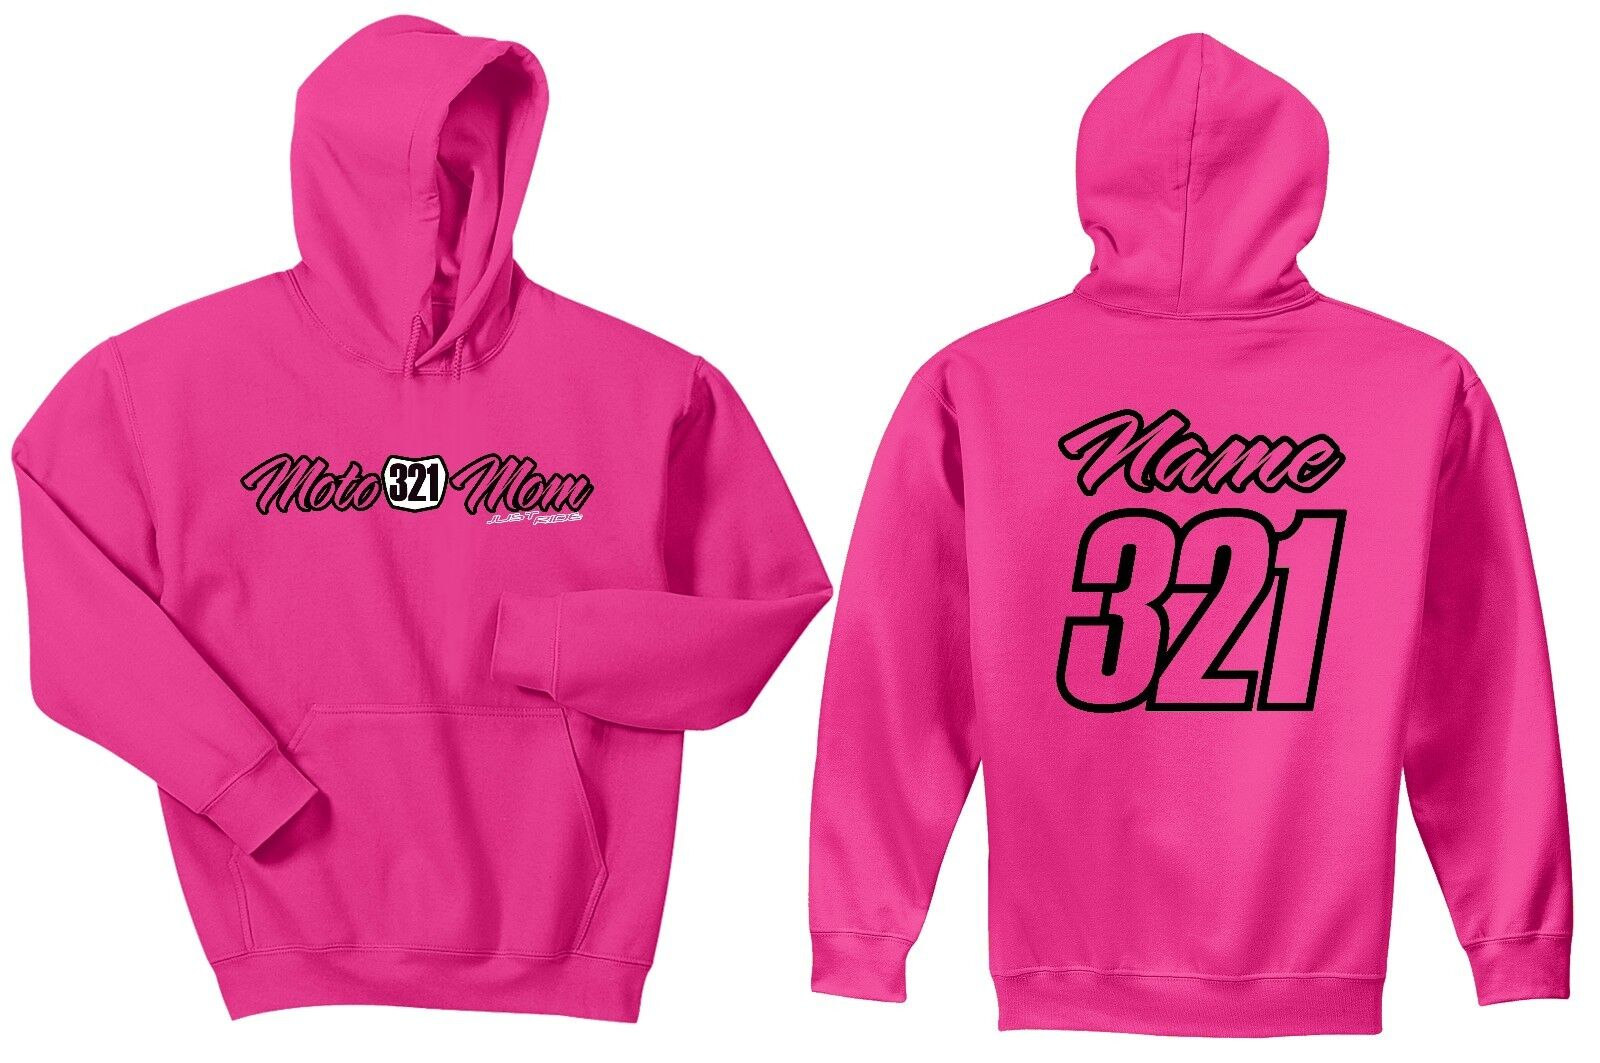 Rosa MOTO MOM NUMBER PLATE HOODIE SWEAT SHIRT JUST RIDE MX MOTOCROSS